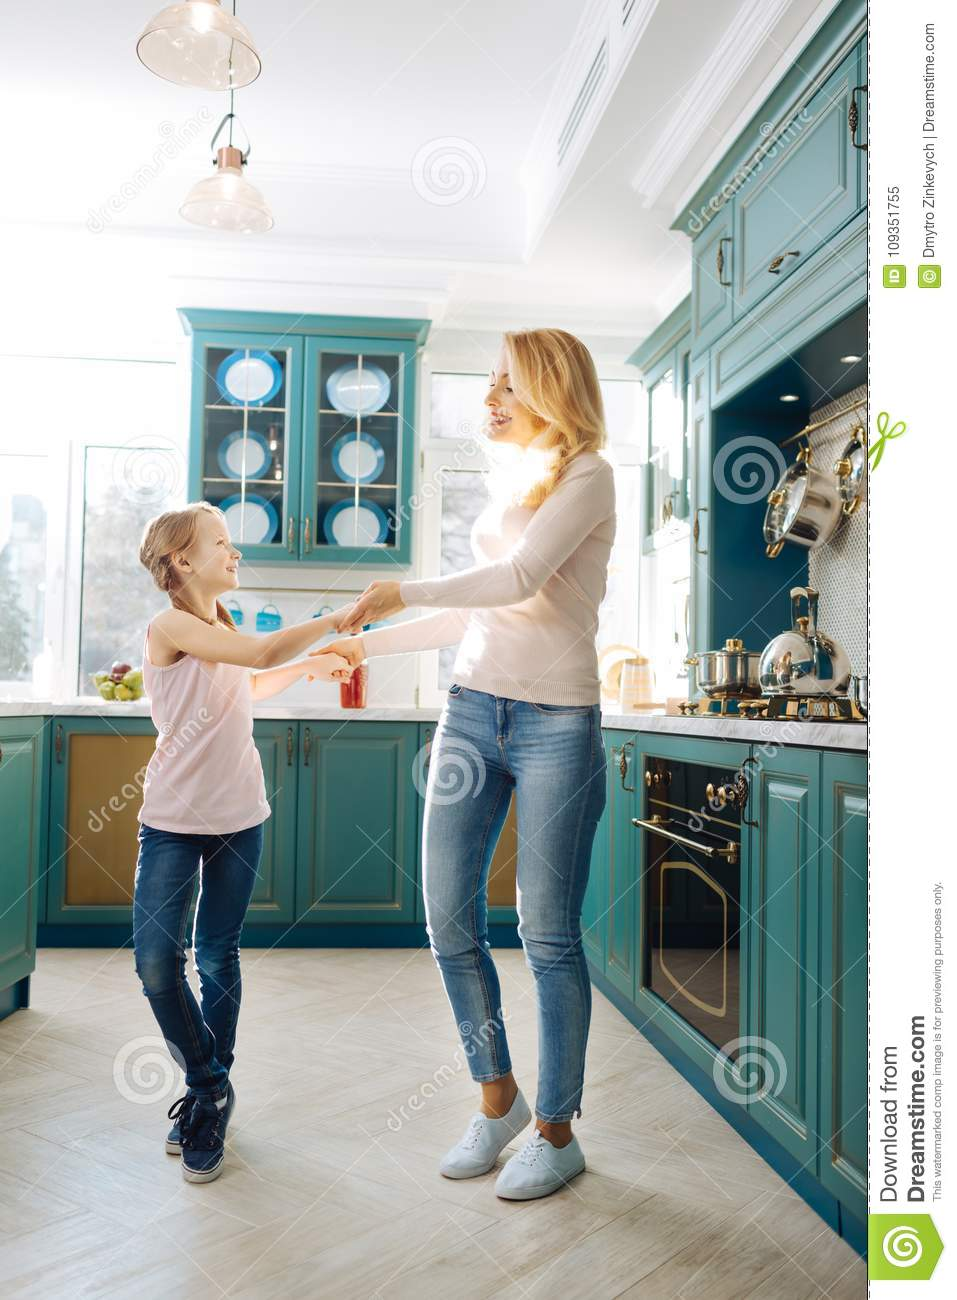 Inspired Mother And Daughter Dancing In The Kitchen Stock Image ...